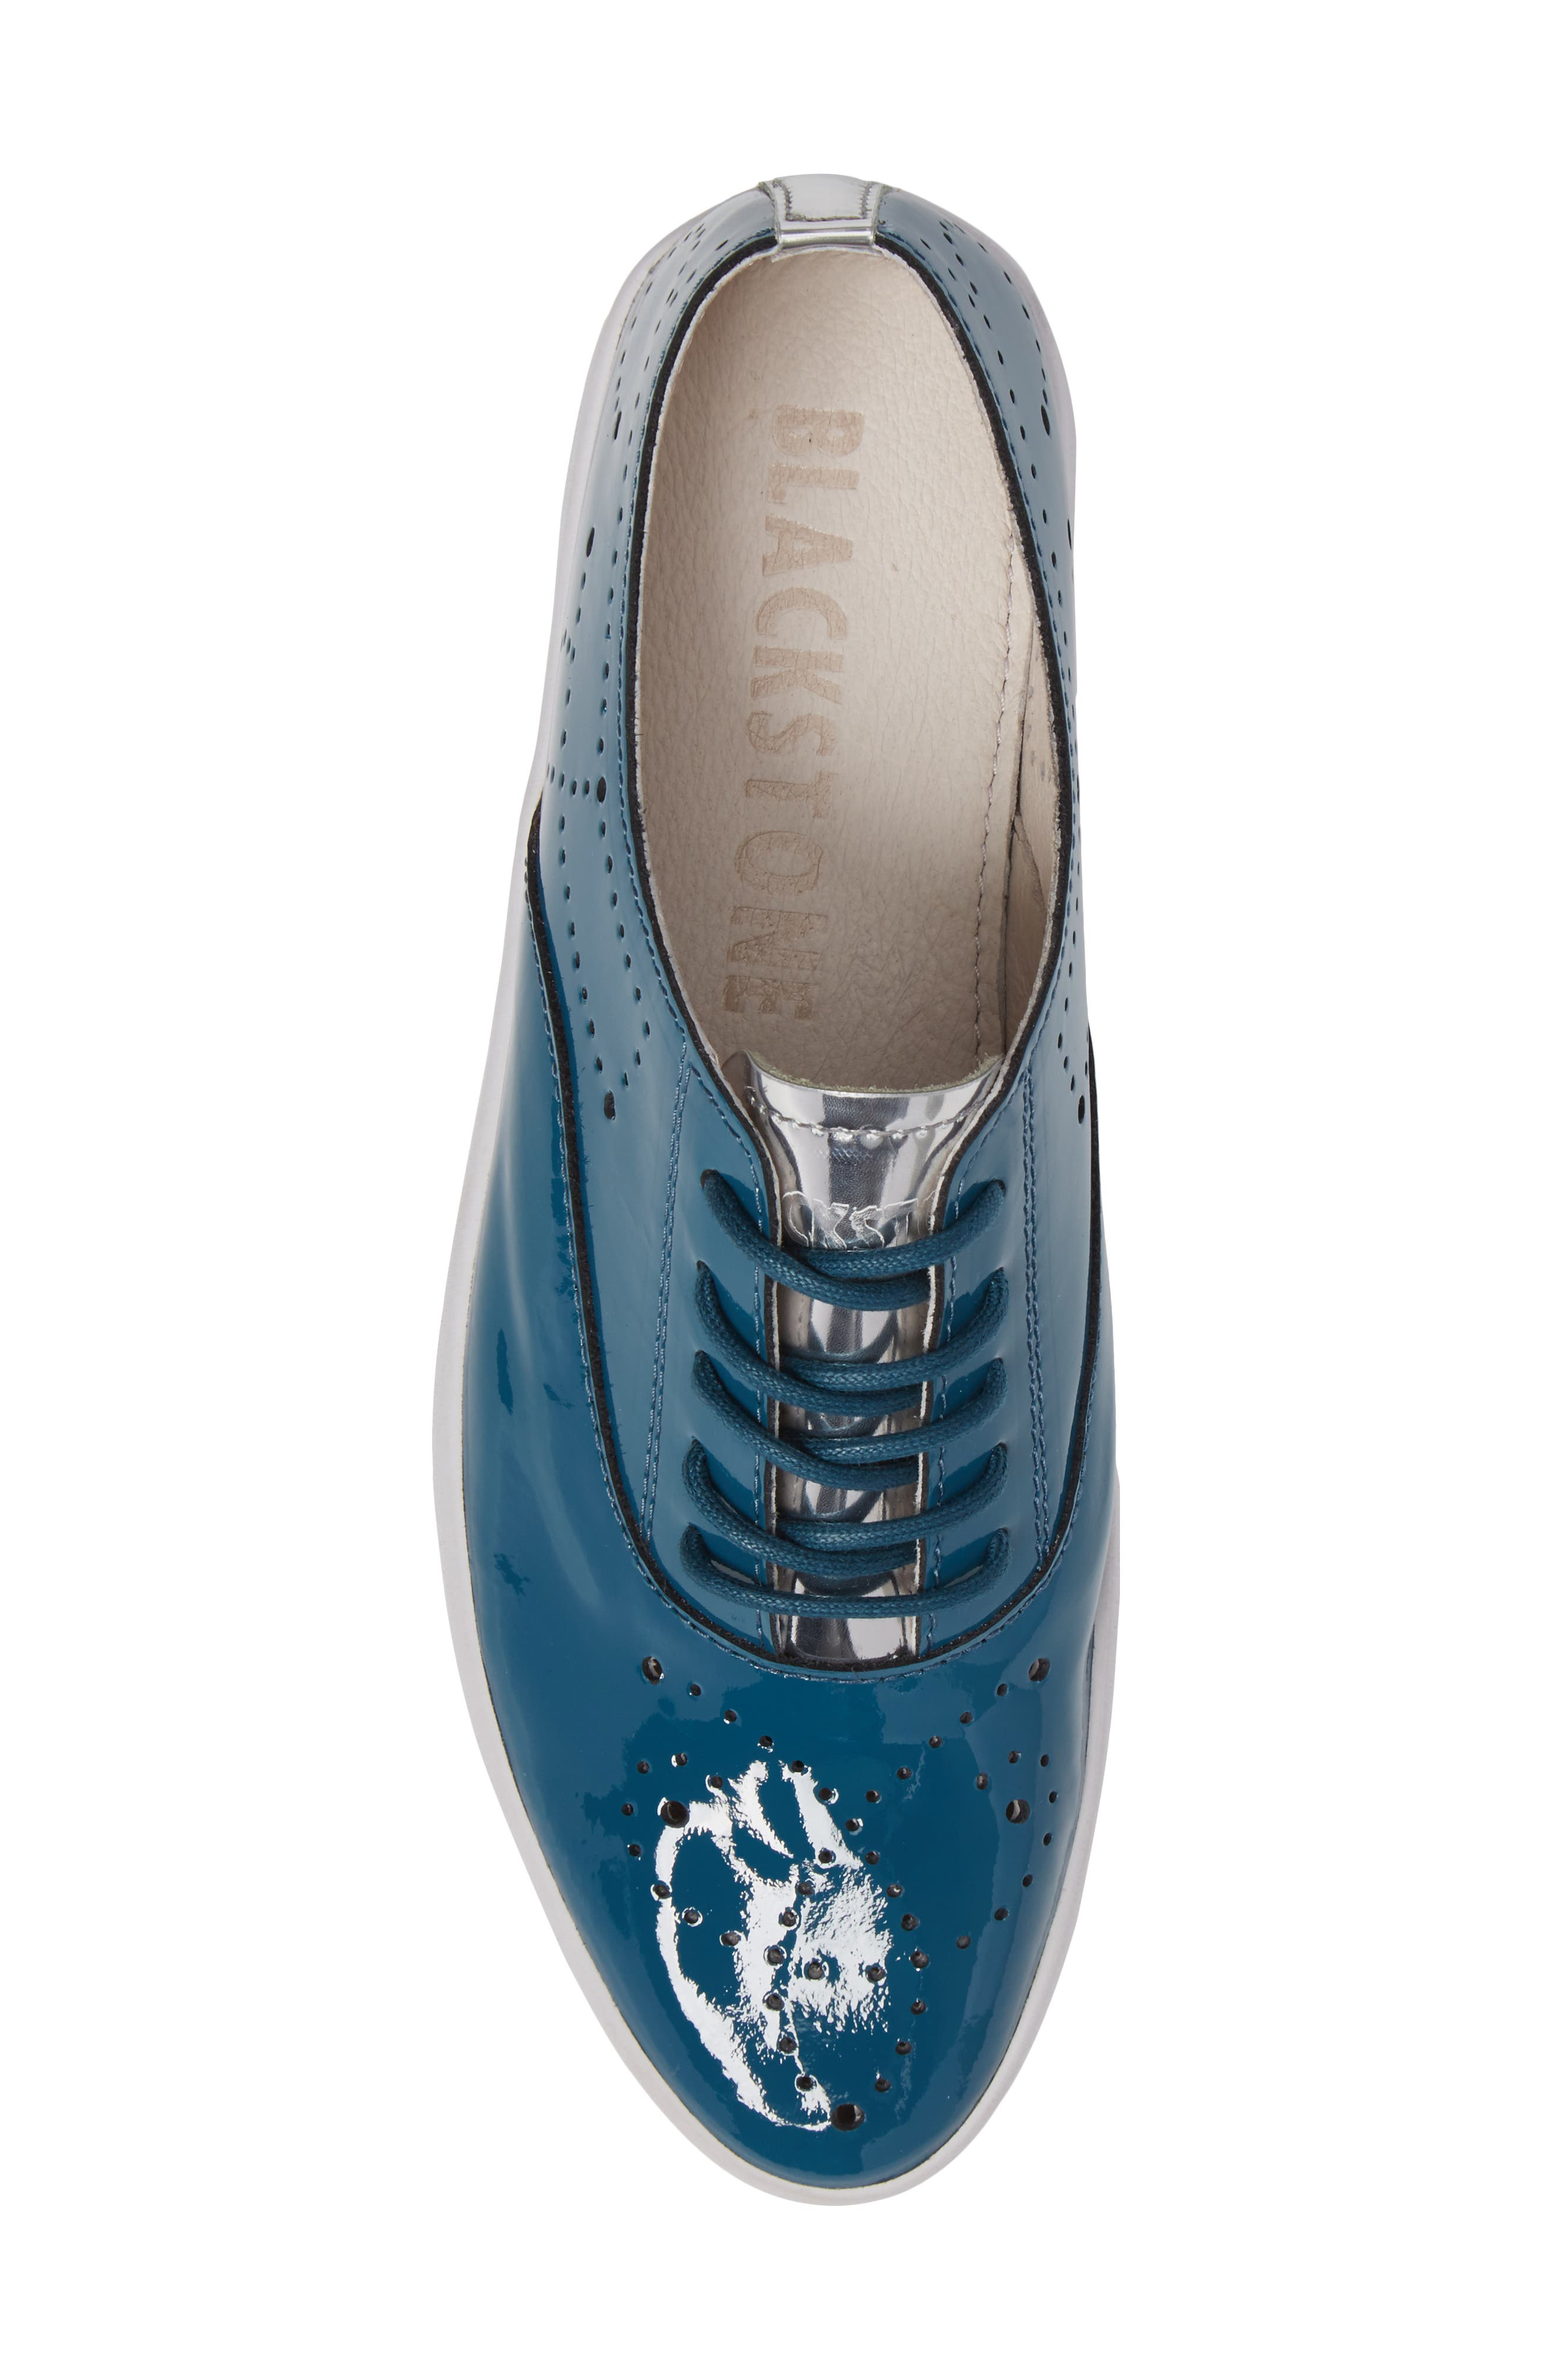 NL41 Sneaker,                             Alternate thumbnail 5, color,                             Turquoise Patent Leather